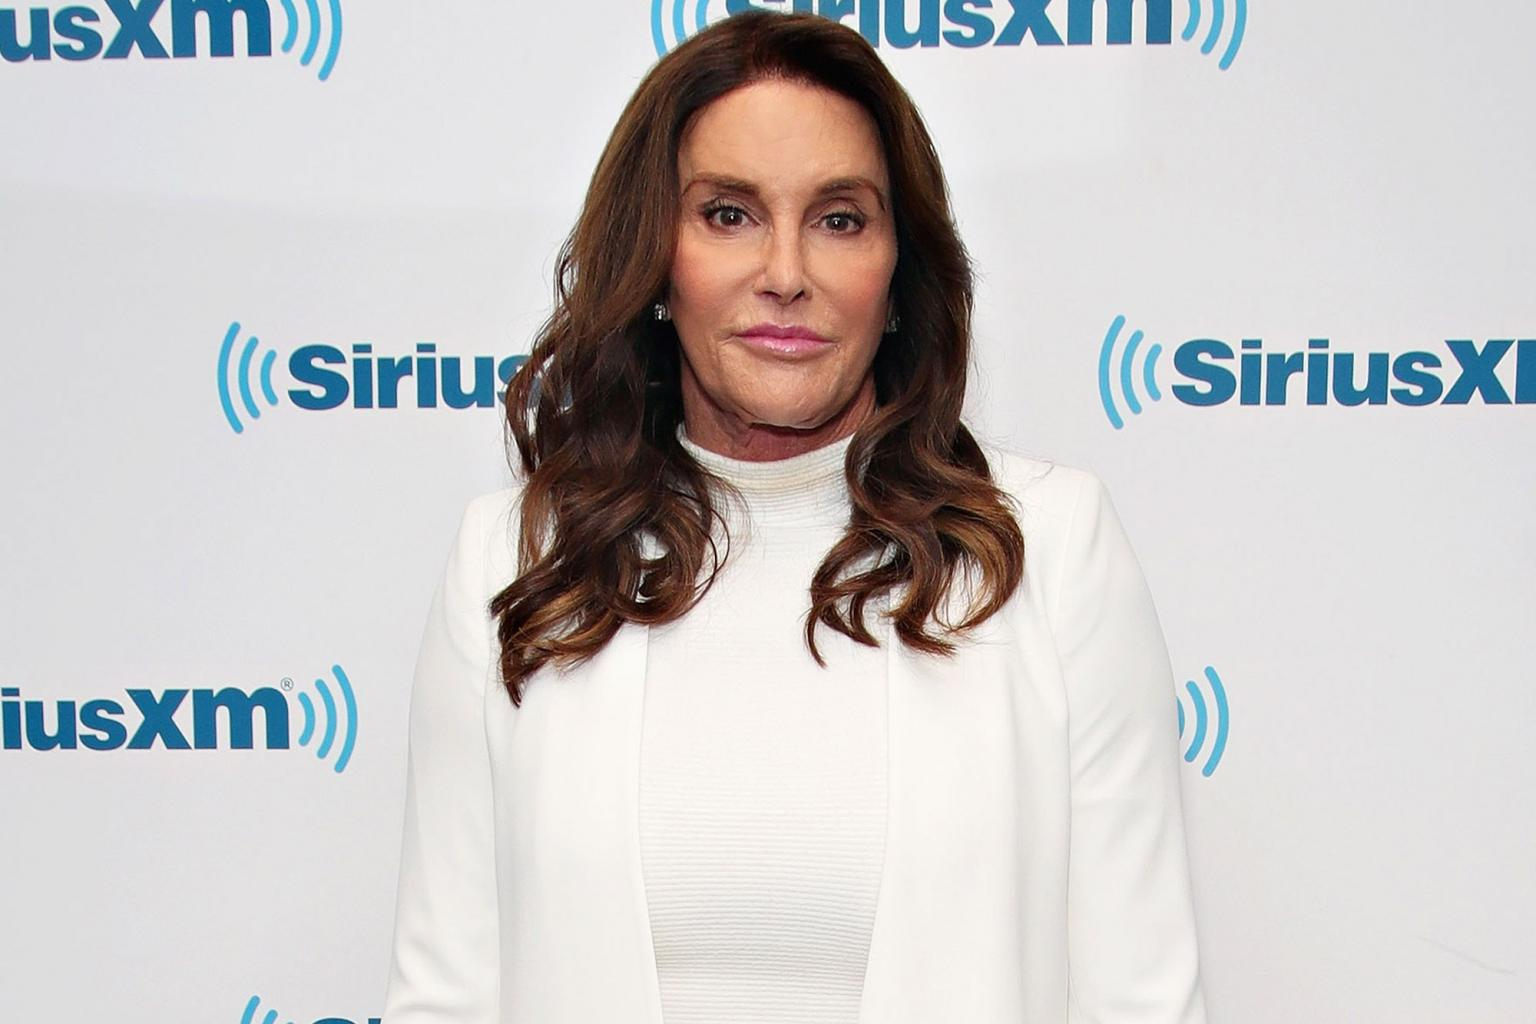 Caitlyn Jenner Jokes That 'Liberals Can't Even Shoot Straight' While Addressing Gop BaseballAttack